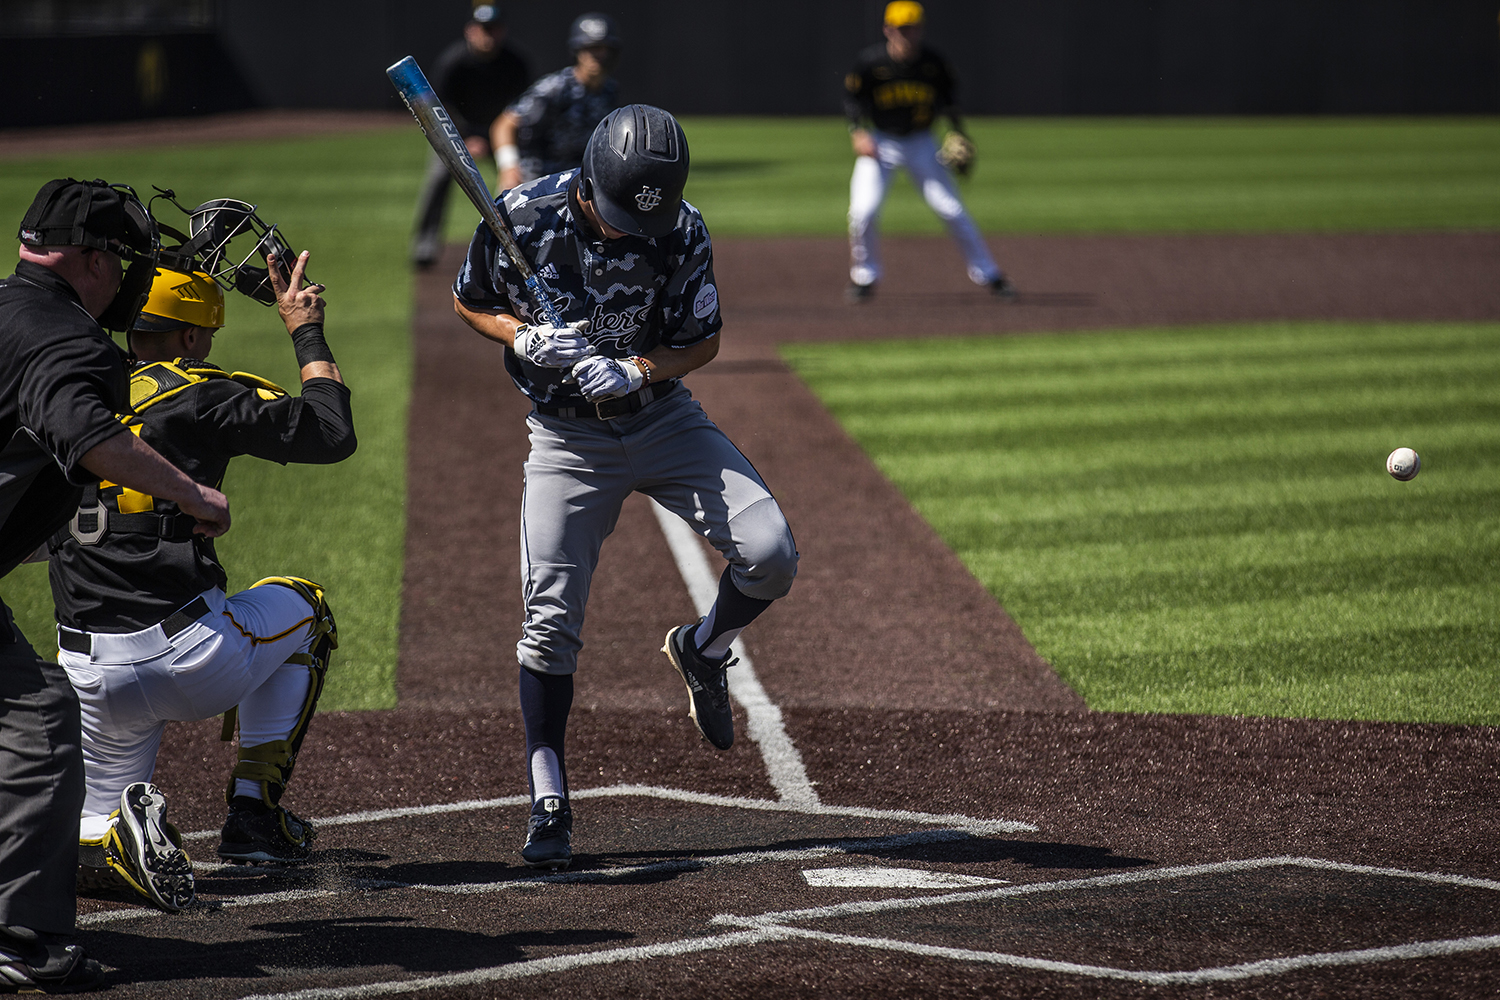 during the game against UC Irvine at Duane Banks Field on Saturday, May 4, 2019. The Hawkeyes defeated the Anteaters 1-0.